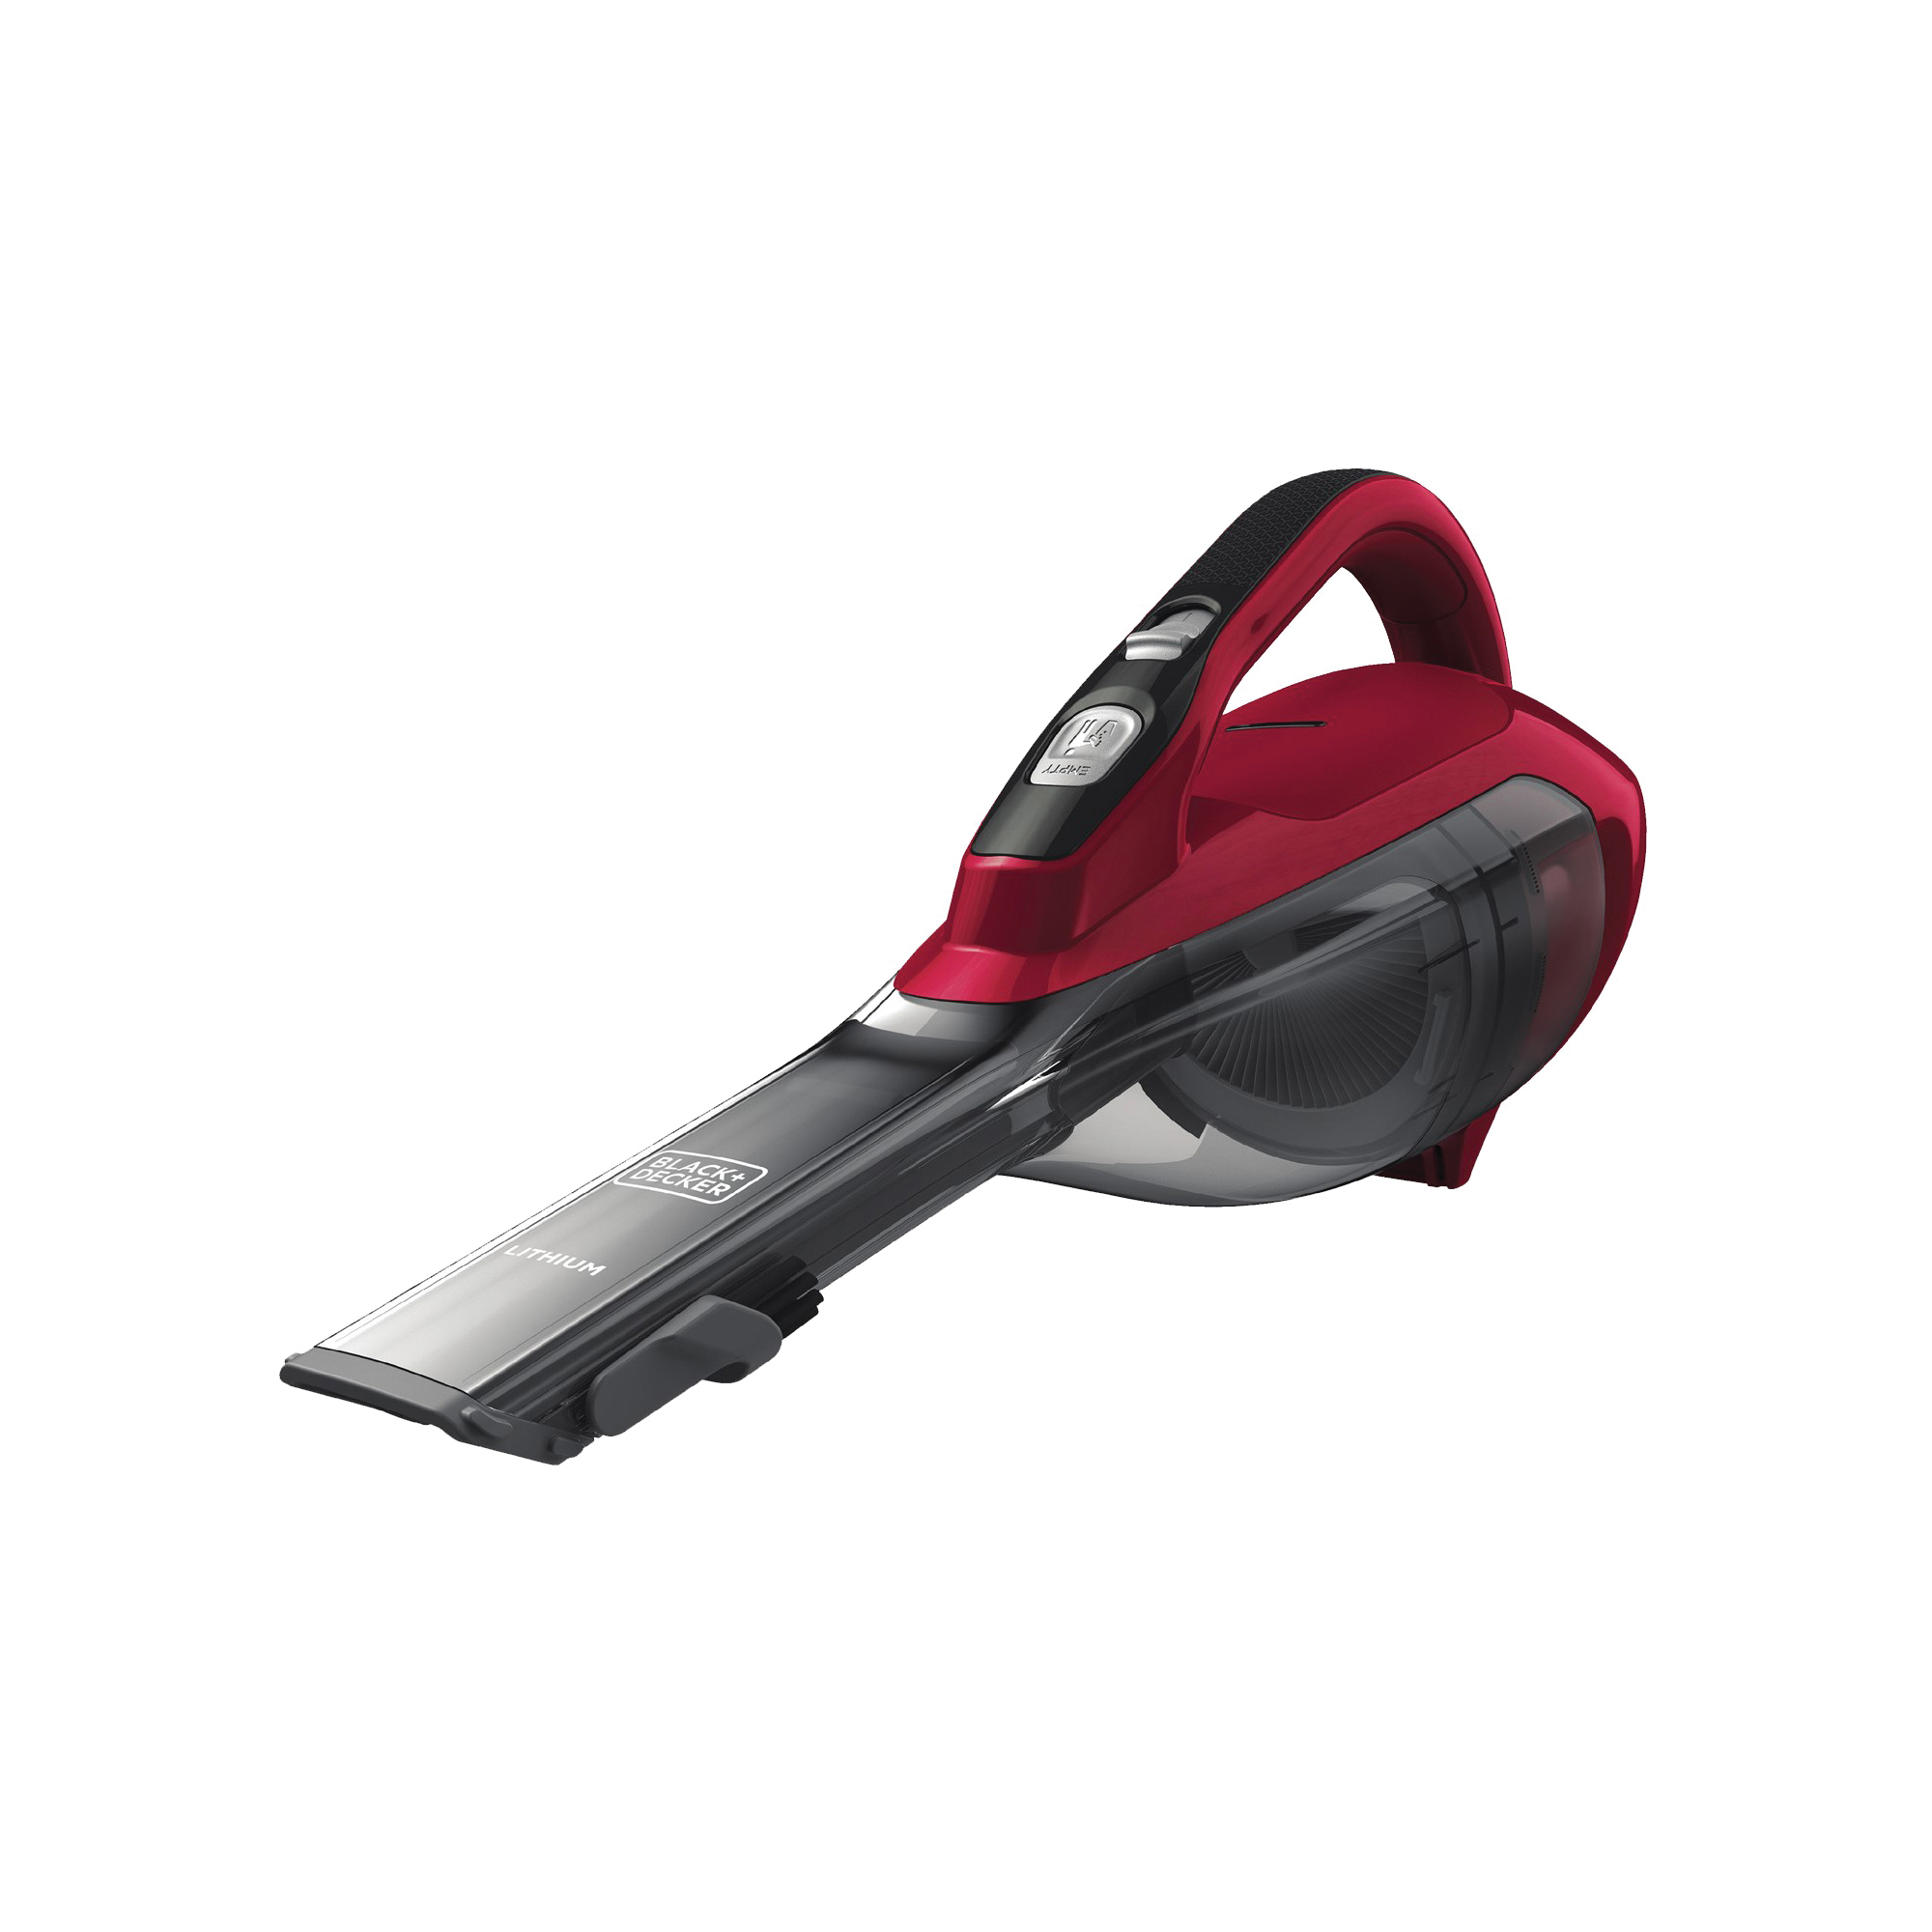 Picture of Black+Decker HLVA320J26 Hand Vacuum, 10.8 V Battery, Lithium-Ion Battery, 2 Ah, Red Chilli Housing